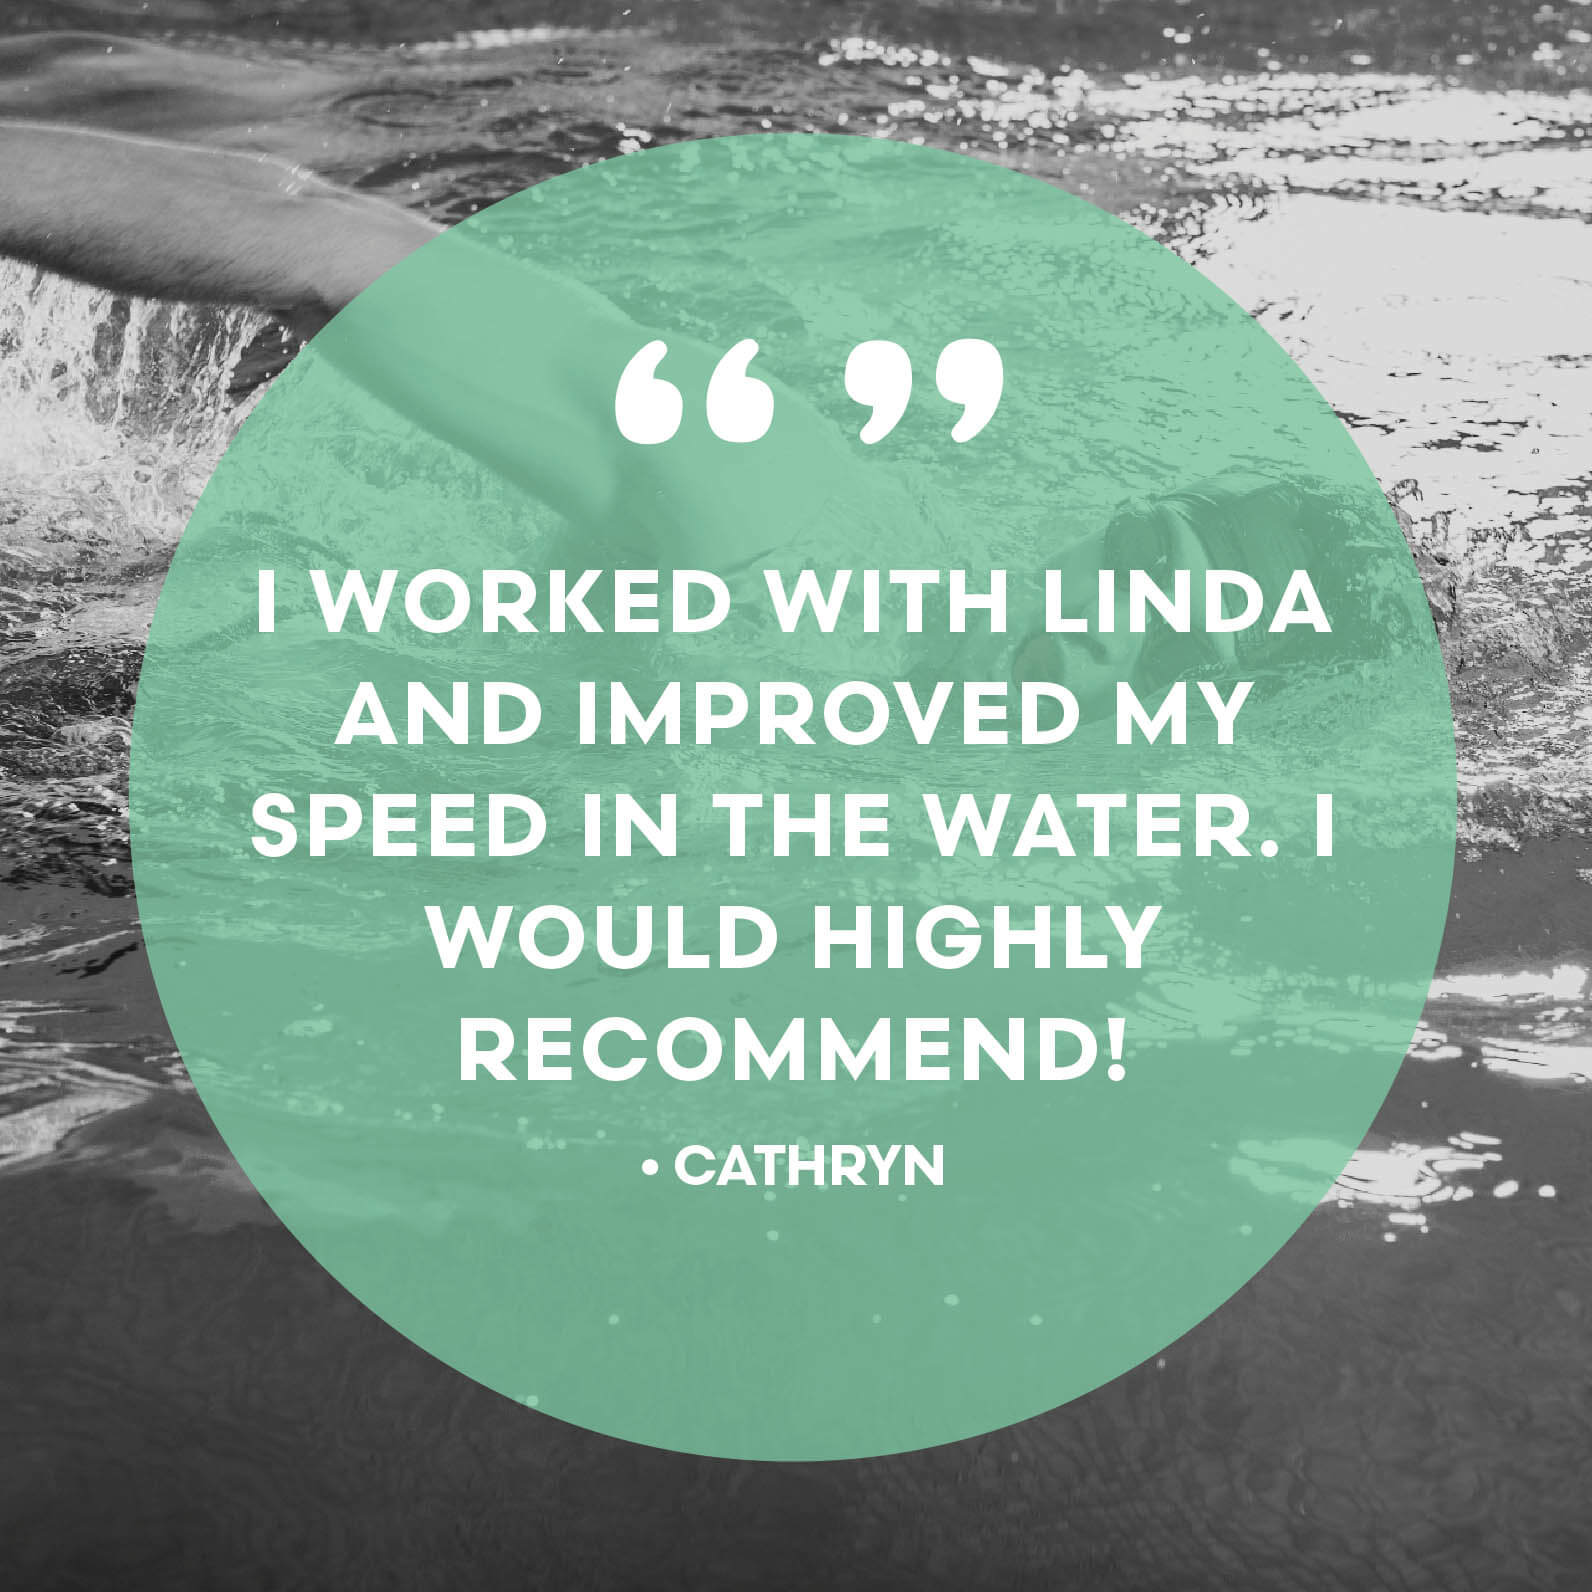 Swim coaching testimonial - I worked with Linda and improved my speed in the water. I would highly recommend!